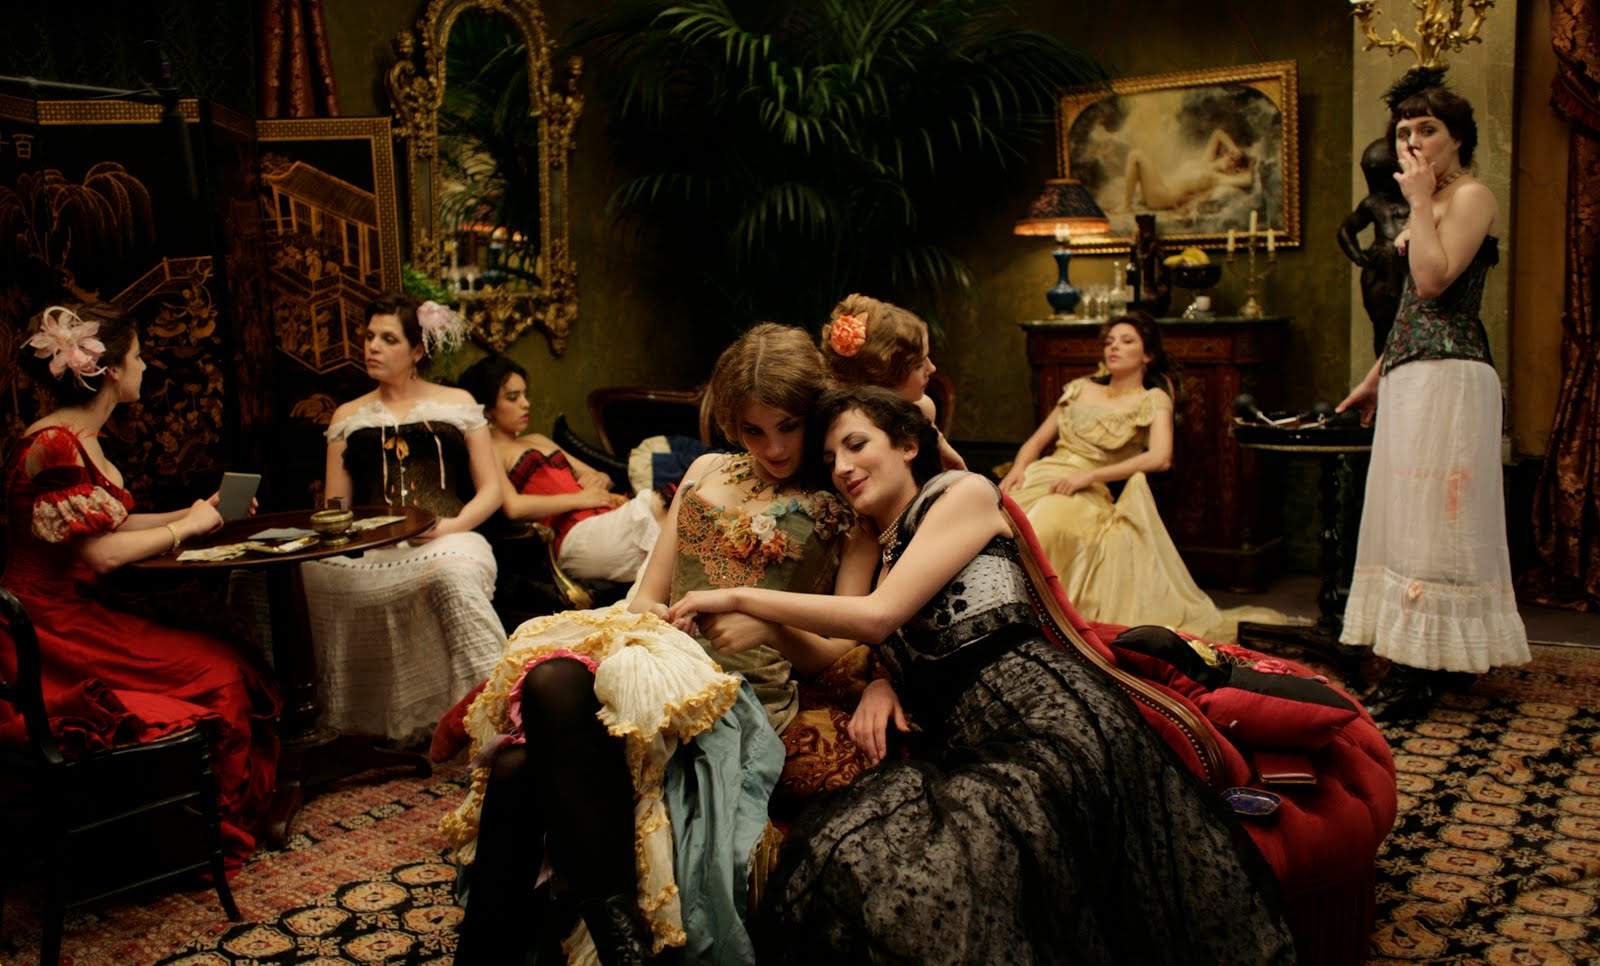 la maison close)  2011  Bertrand Bonello  França  censura 18